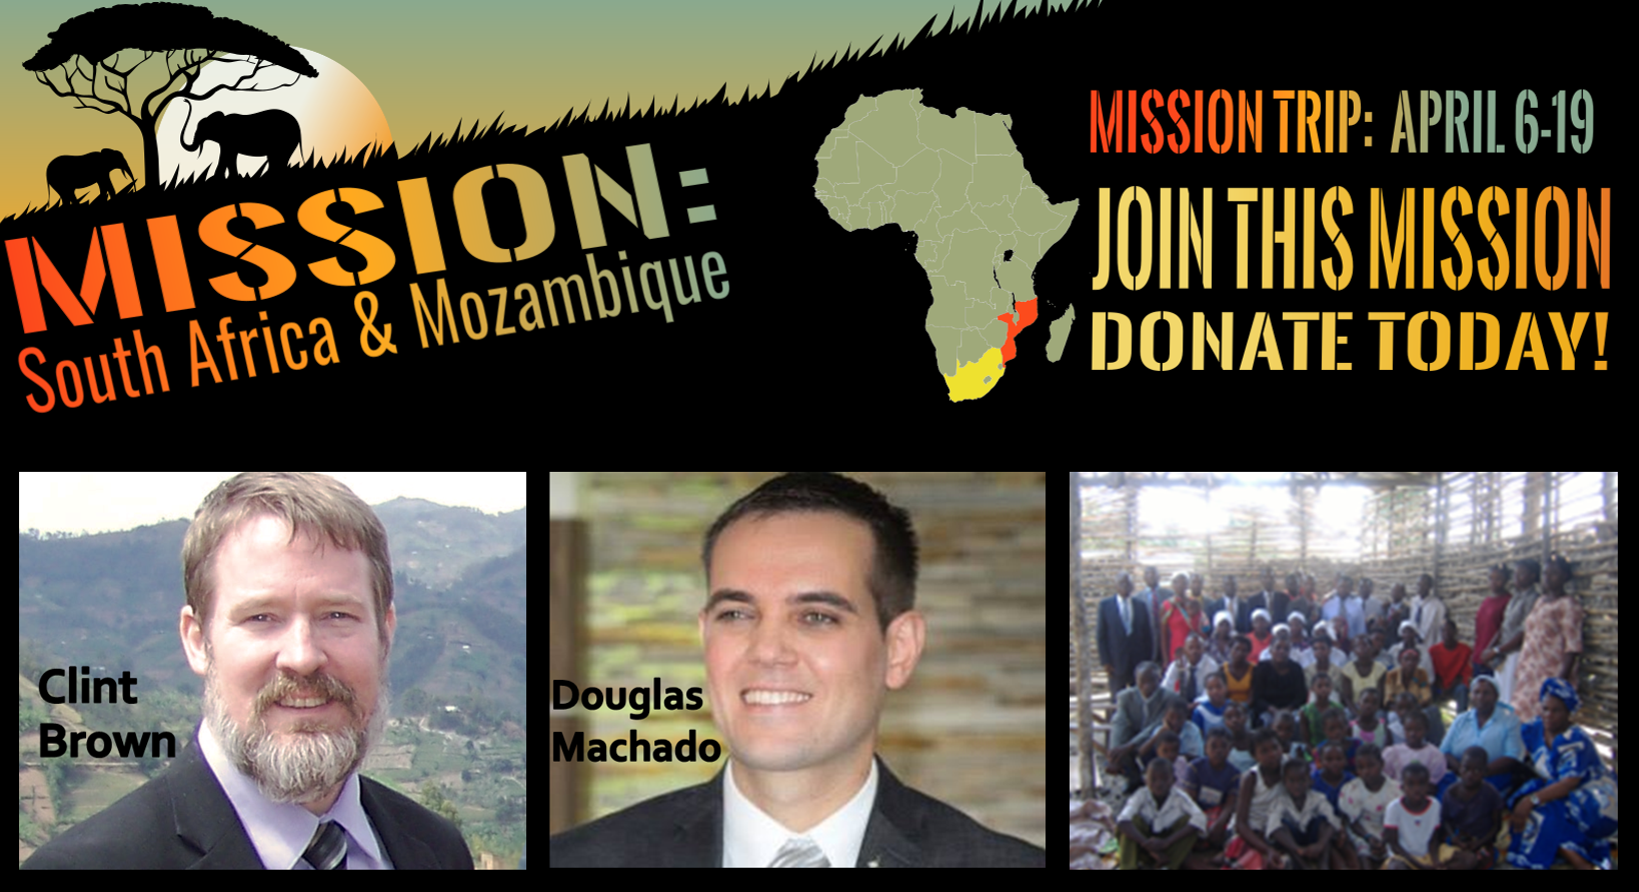 Thumbnail for the post titled: Mission: South Africa and Mozambique